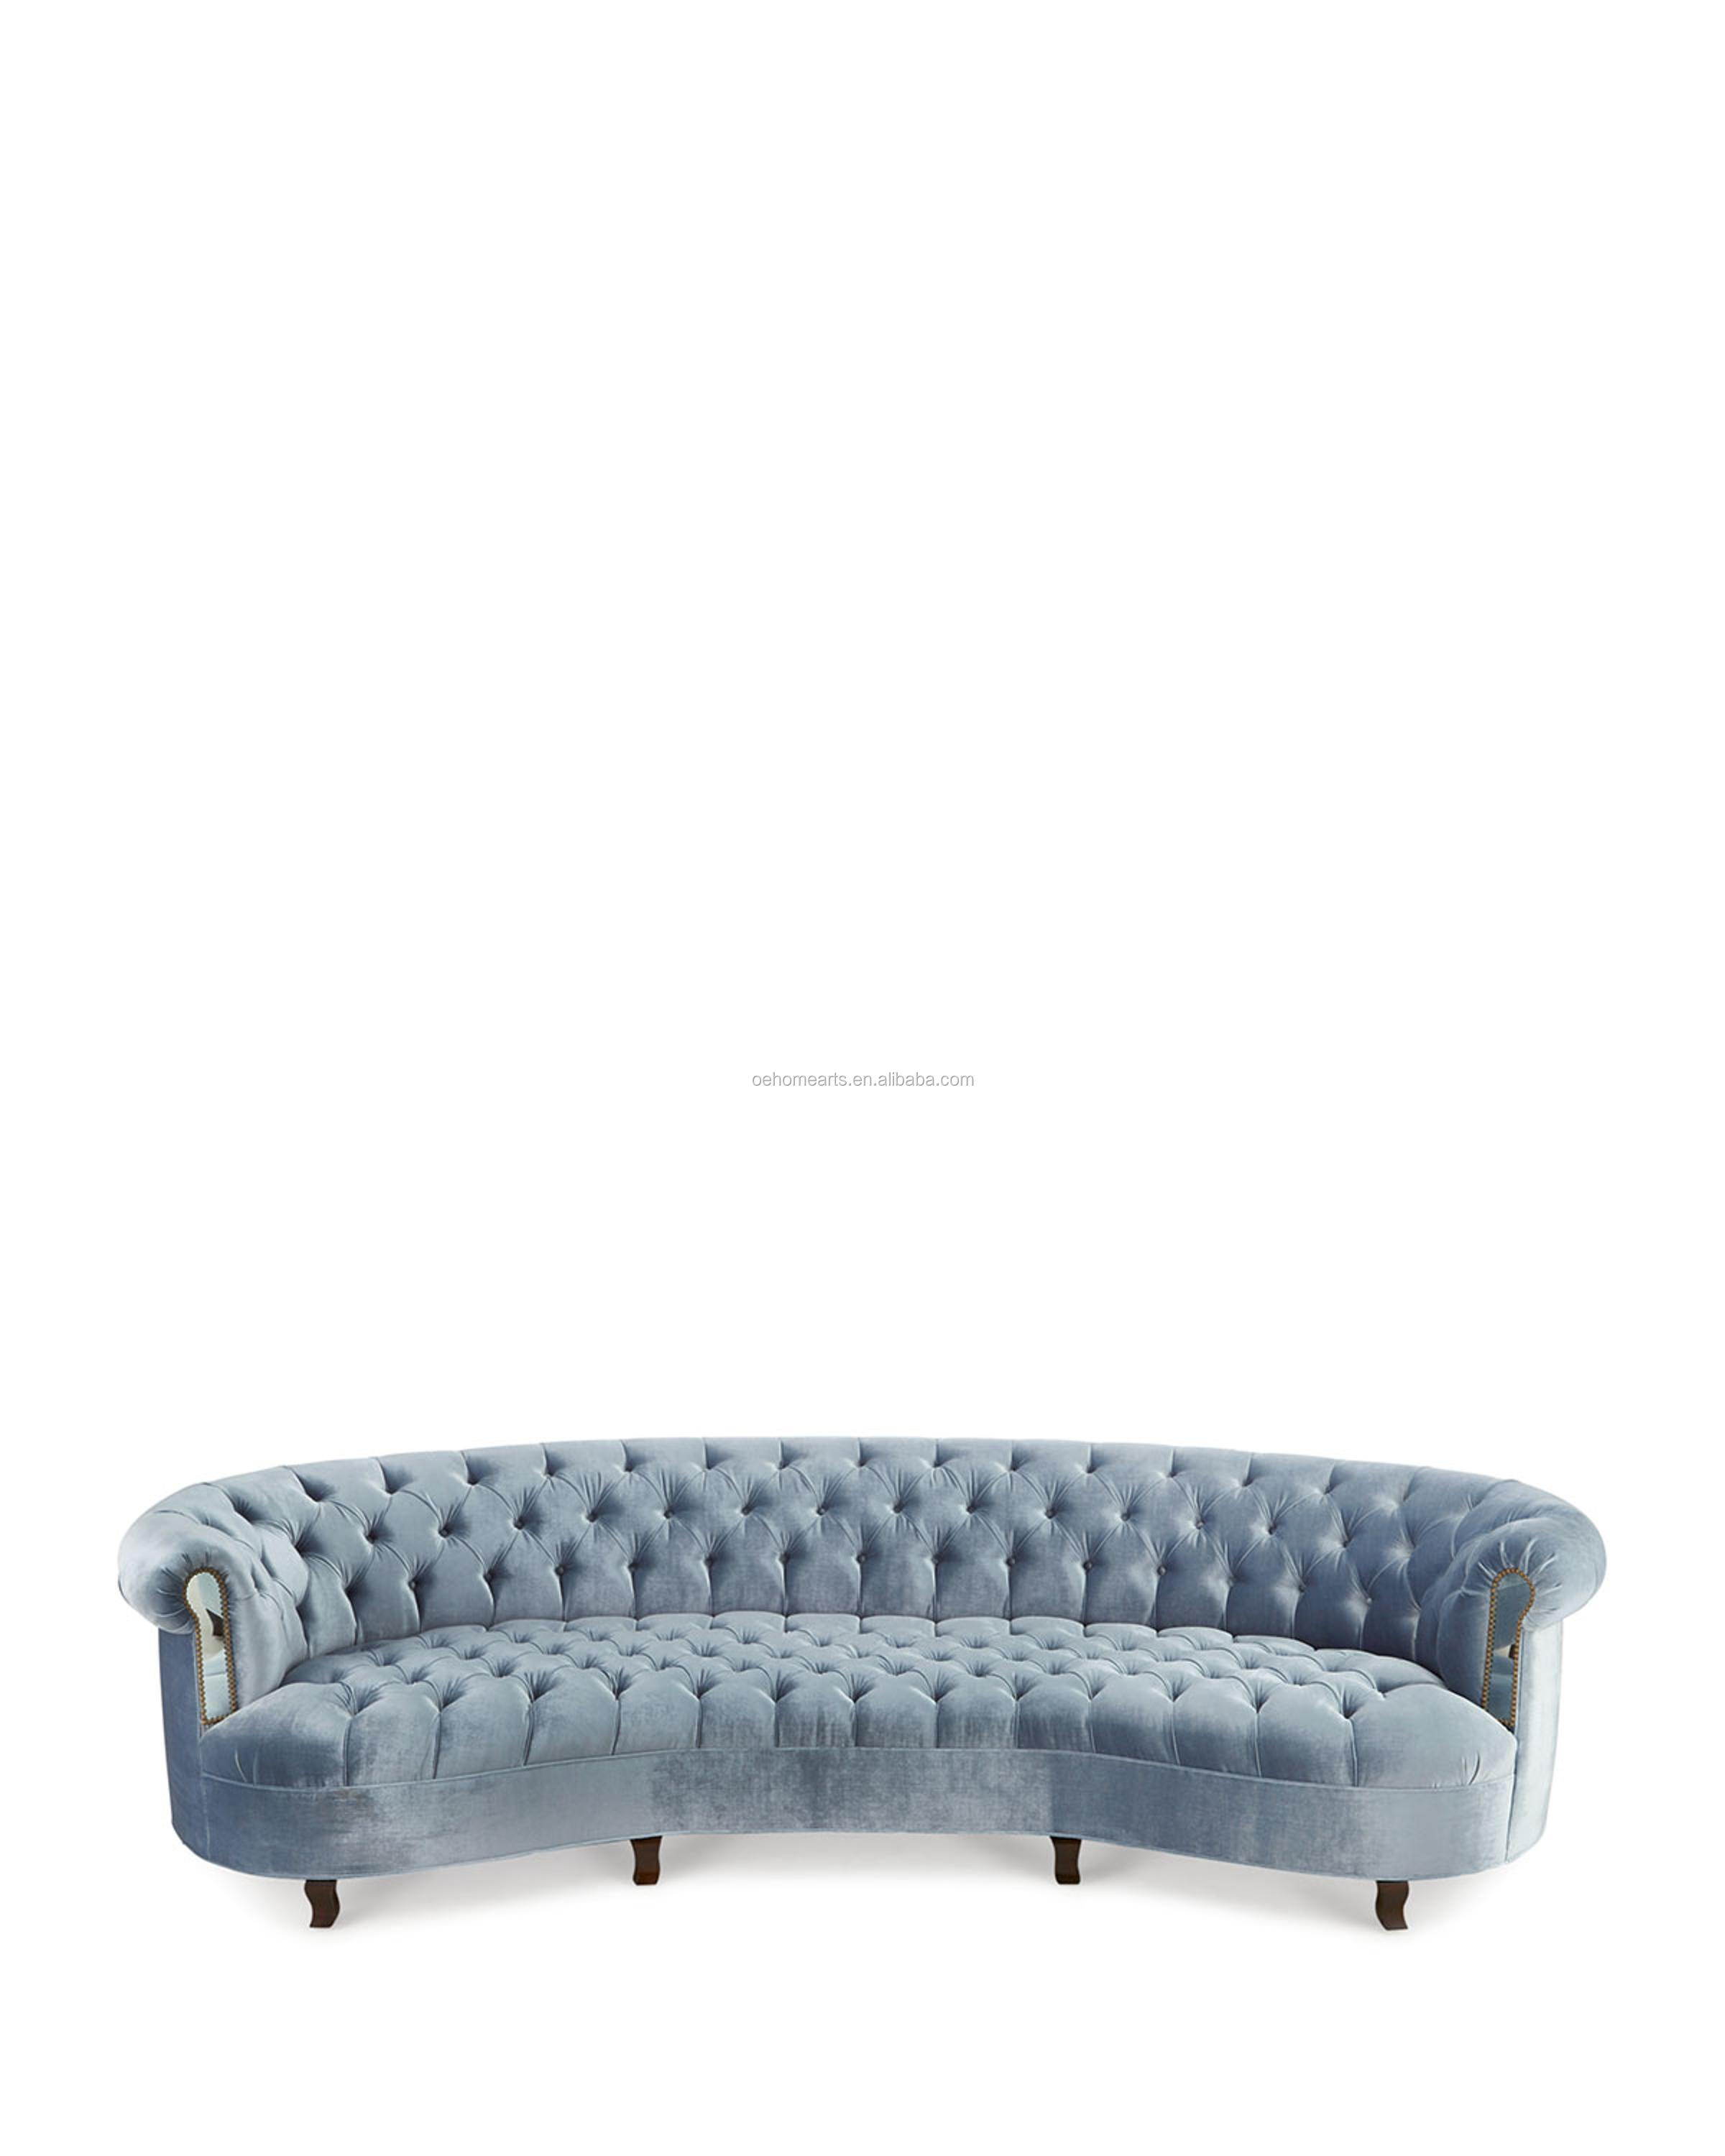 Sofa Set Furniture Diwan Sf00062 Hot Selling Sale Factory Price Diwan Sofa Sets Buy Diwan Sofa Sets Hot Sale Diwan Sofa Sets Diwan Sofa Sets Factory Price Product On